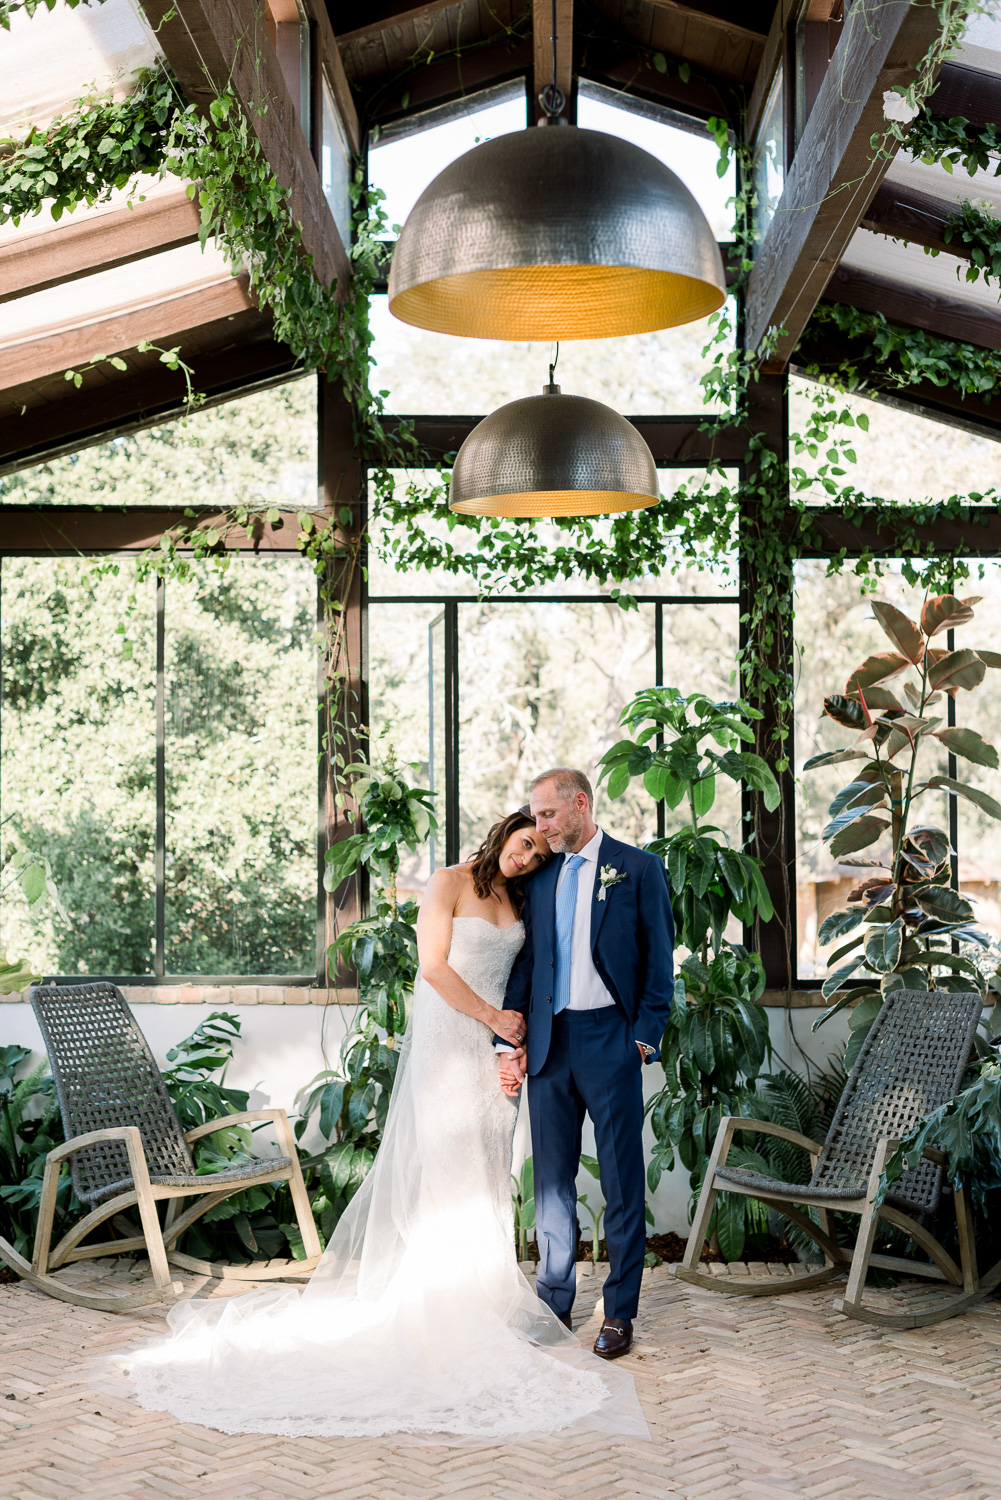 bride and groom at venue with greenery